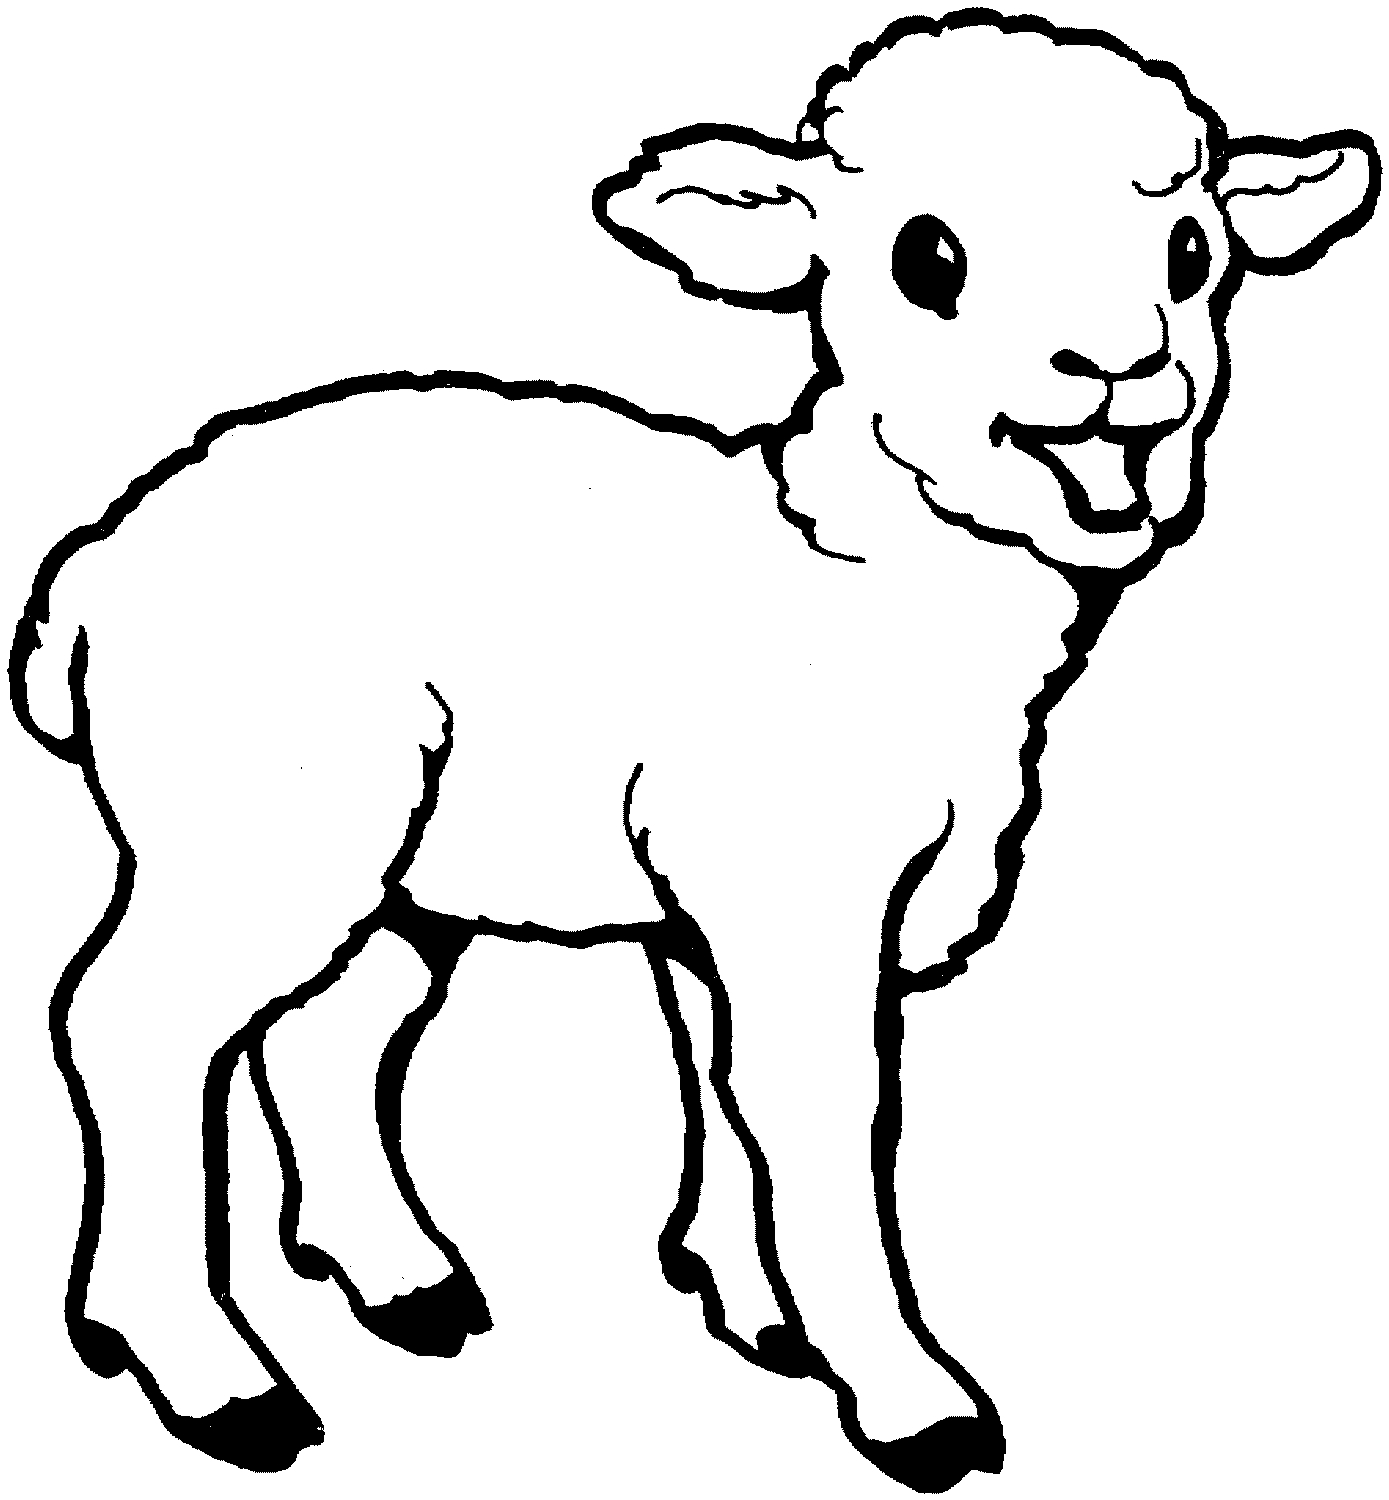 25 Sheep Coloring Page Collections FREE COLORING PAGES Part 2